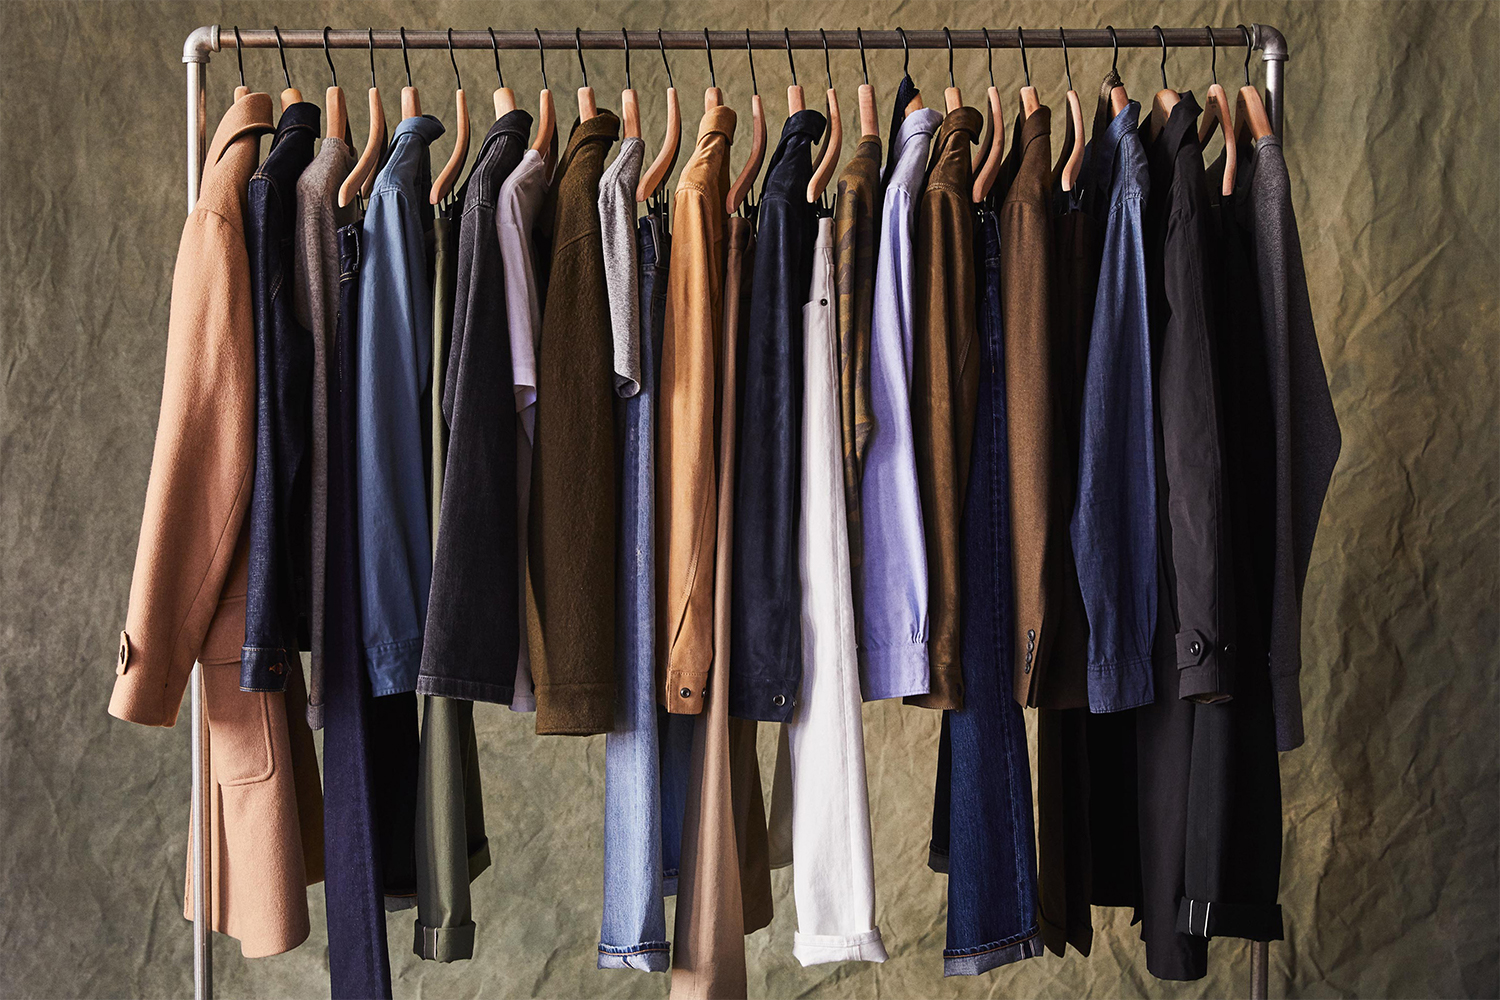 A rack of men's clothes, from pants to shirts to jackets, from Todd Snyder's TSX capsule collection, a 10-year anniversary clothing line